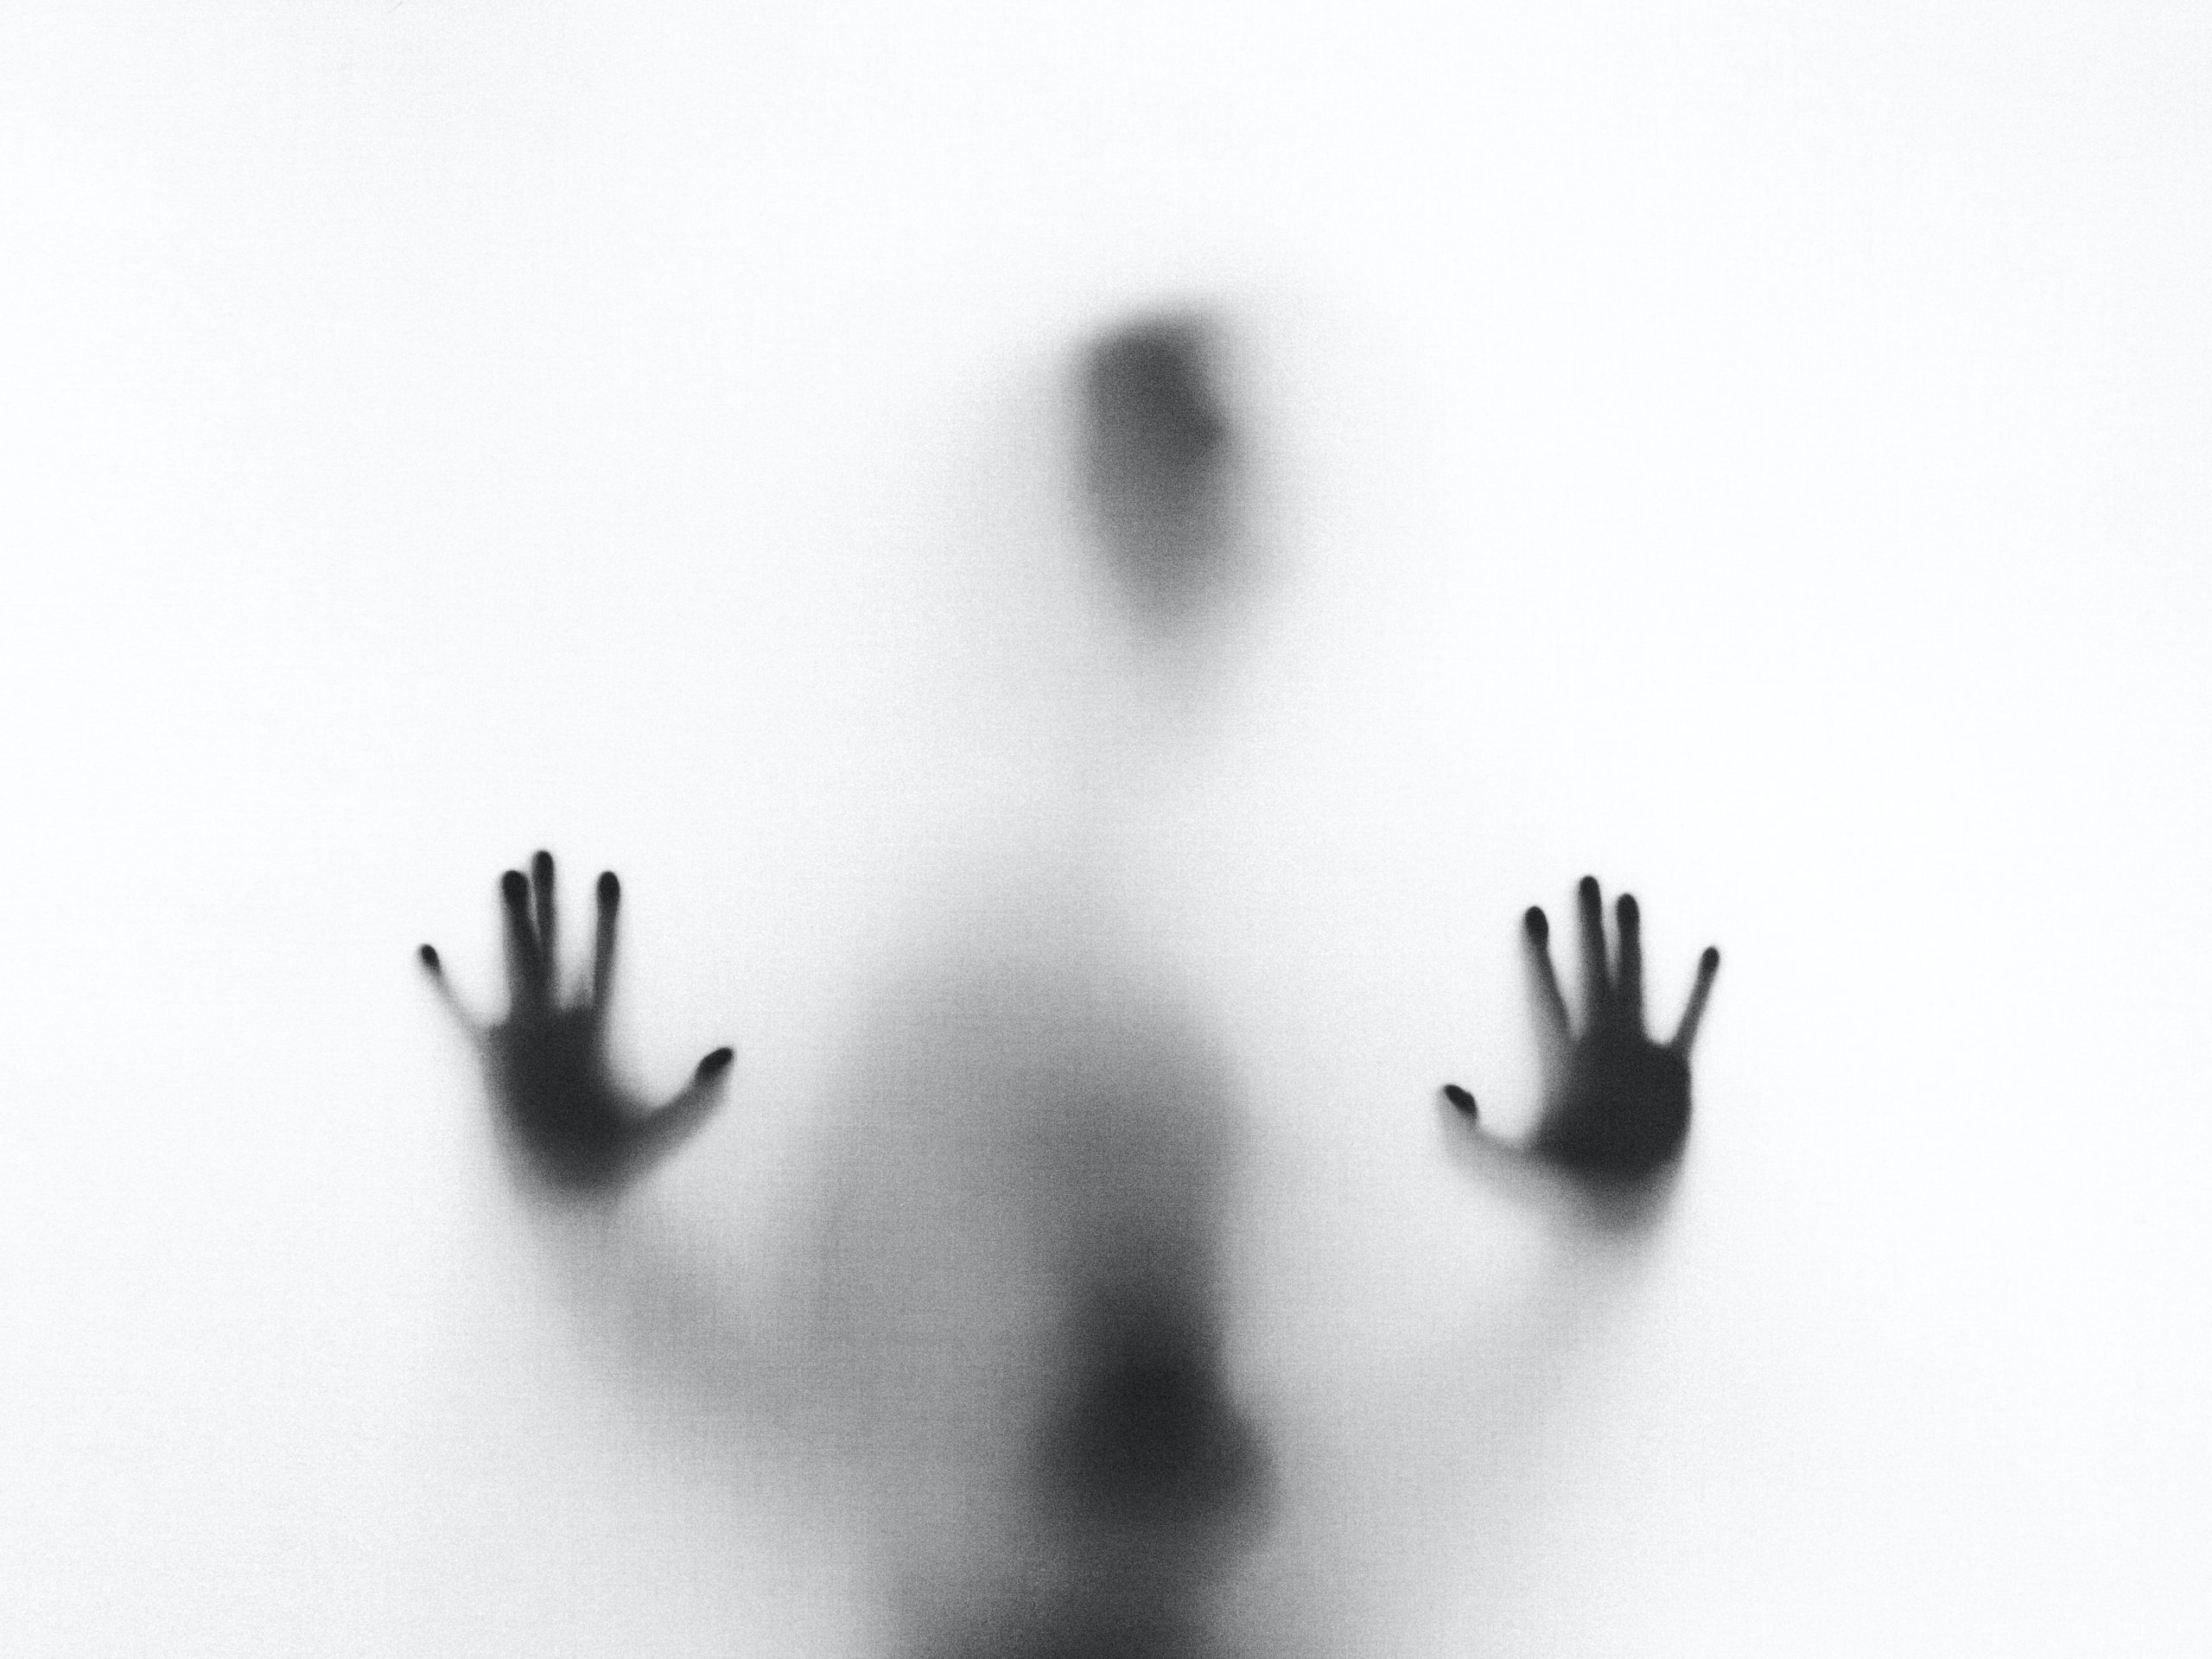 A white screen shows a person's shadow pressed up against it. Their hands are pressed up against the screen and the shadow of their body is visible.